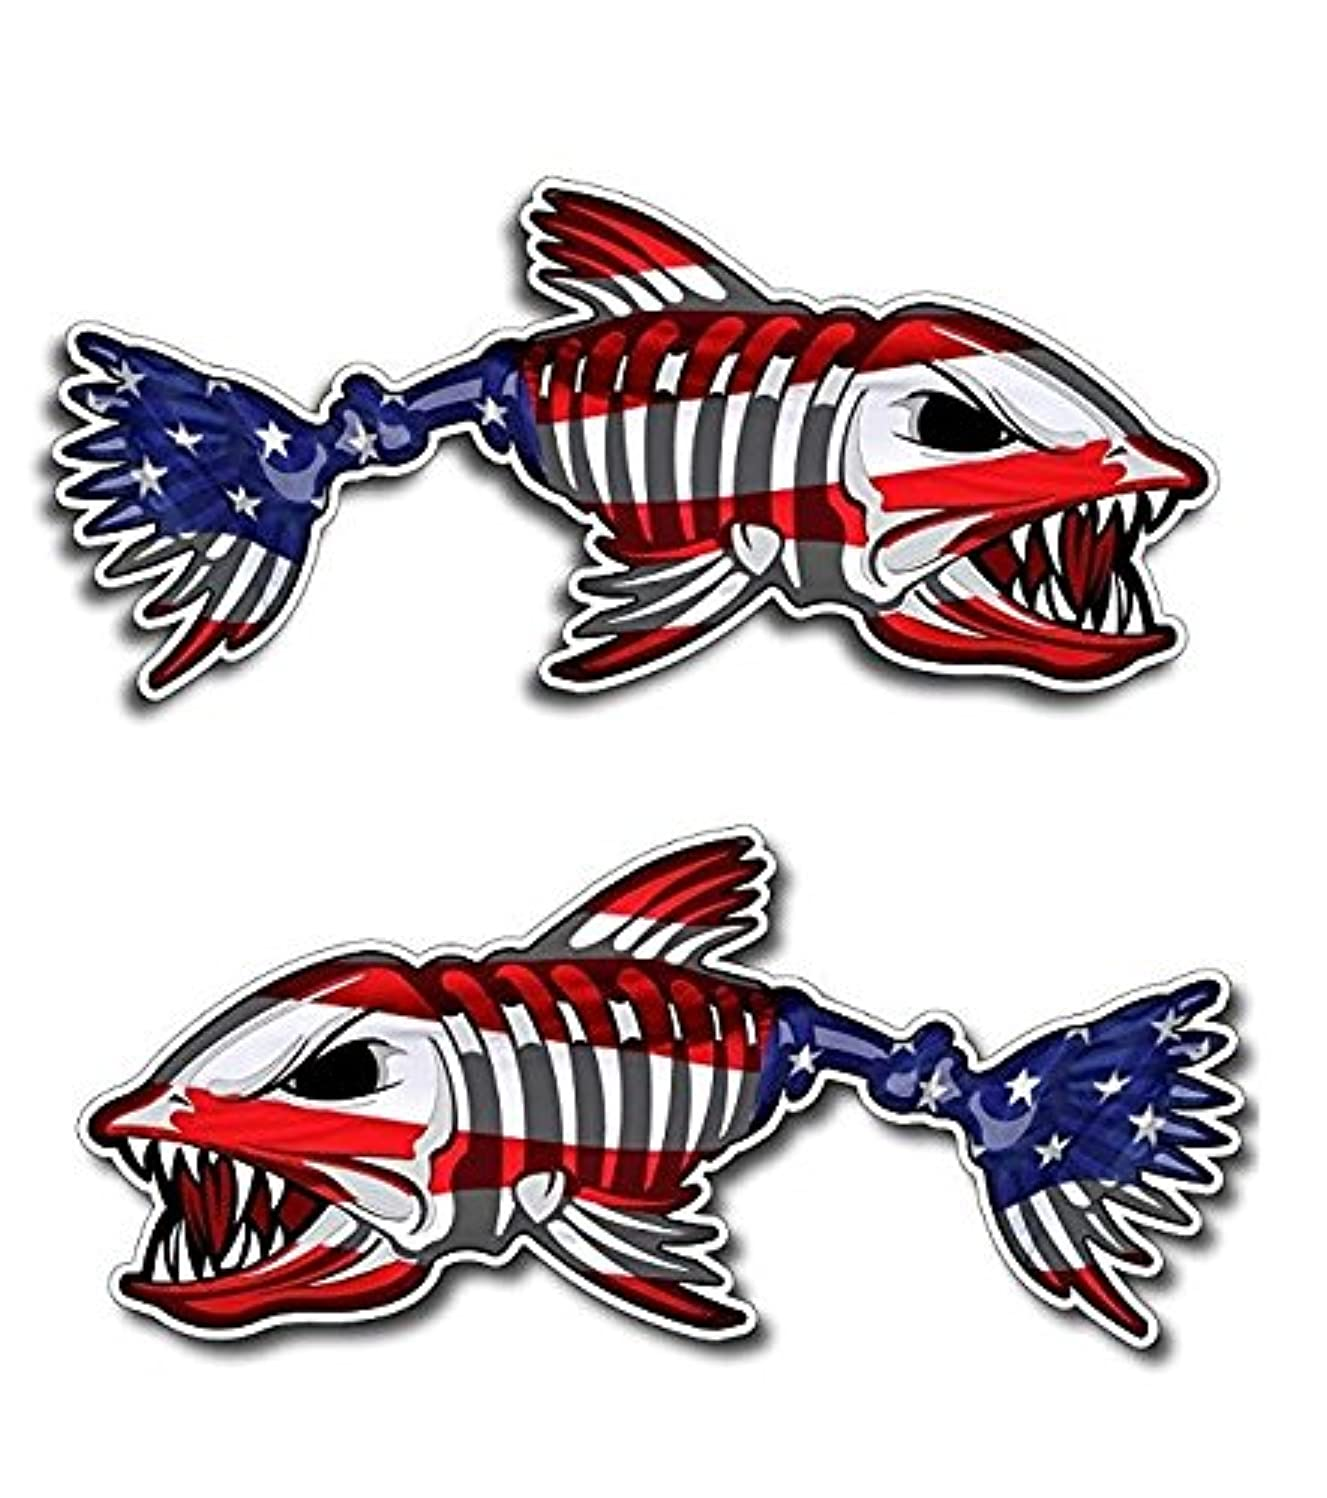 Premium American Flag Bone Fish Sticker. Best USA Decal Vinyl for Your Car Window Or Bumper, Hard Hat, Fishing Toolbox. Decor for Shops, Cafe, Laptop Or Even Kayak Or Boat. Size 2.1 inch x 5 inch